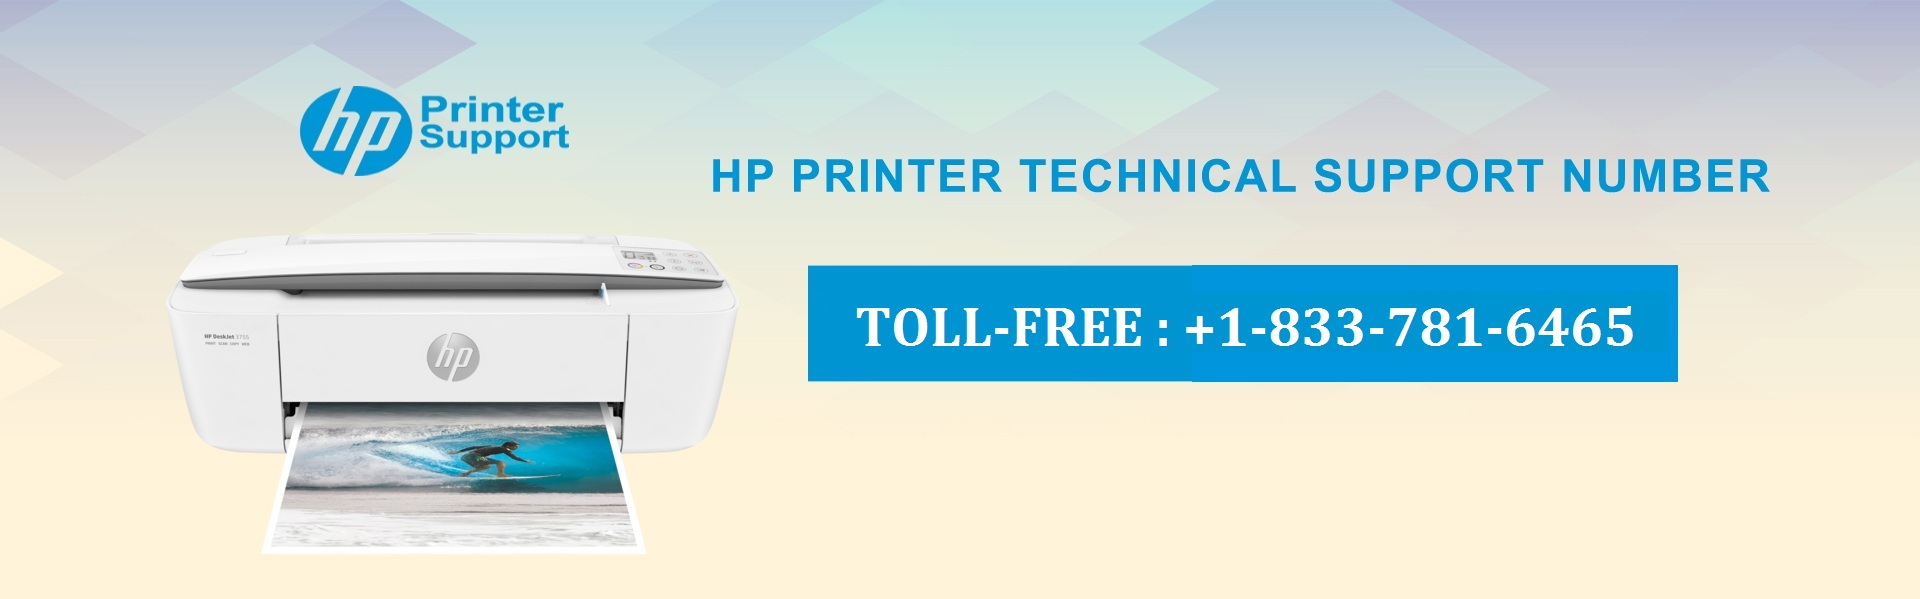 hp Printer phone number, hp Printer help number, hp Printer customer support, Set Up a New HP Printer